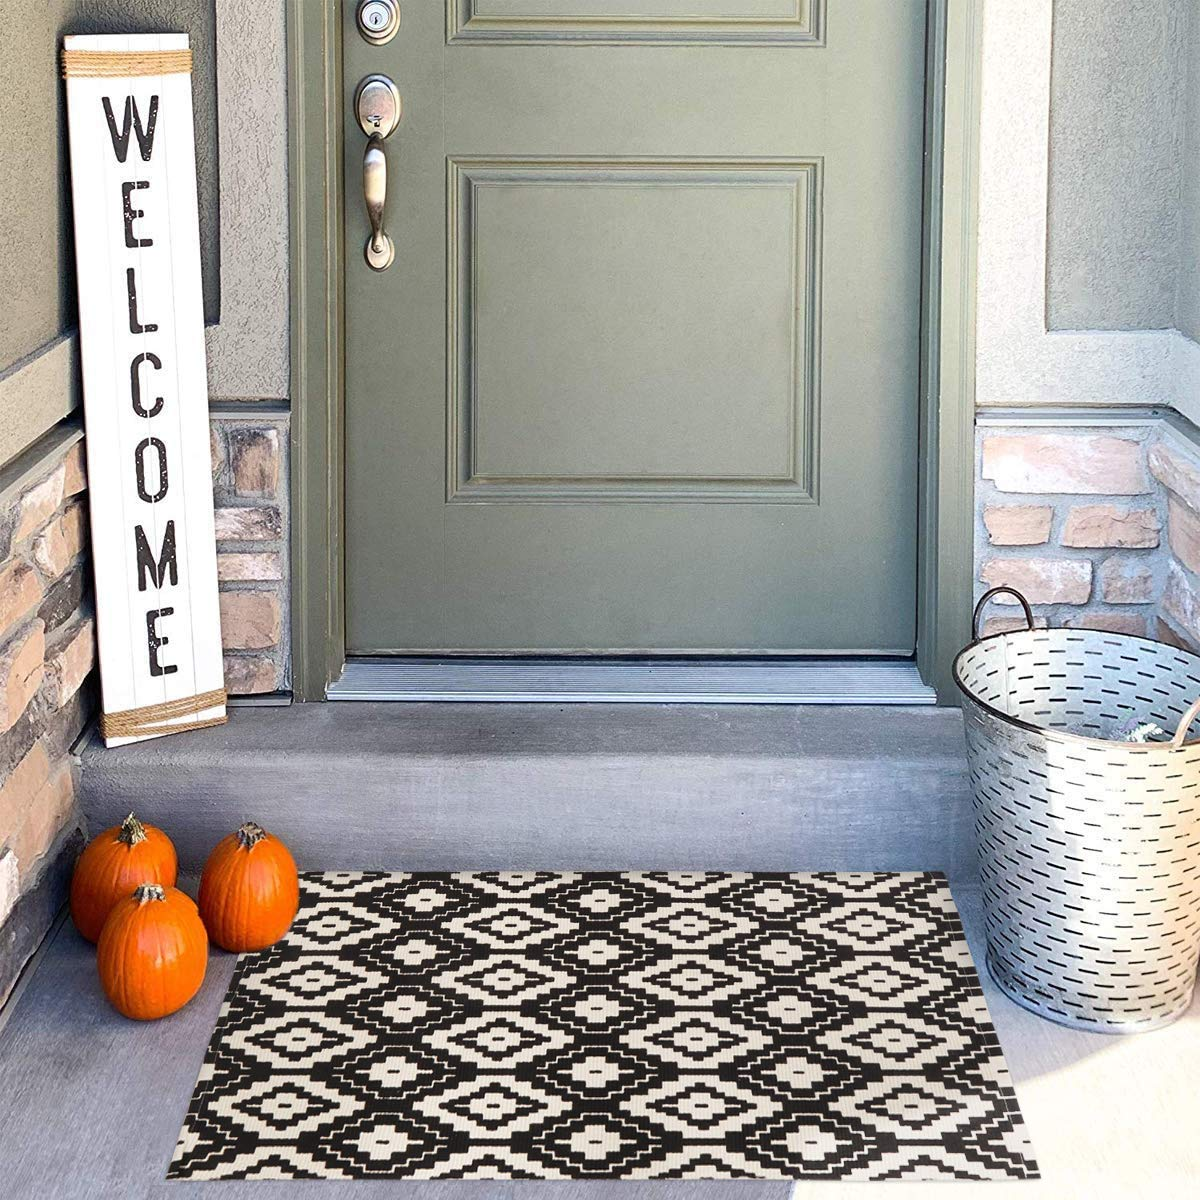 Uphome Indoor Outdoor Doormat 2'x3' Boho Cotton Area Rug Hand Woven Moroccan Geometric Throw Rugs Machine Washable Farmhouse Rug Carpet for Entryway Porch Living Room Laundry Kitchen,Black